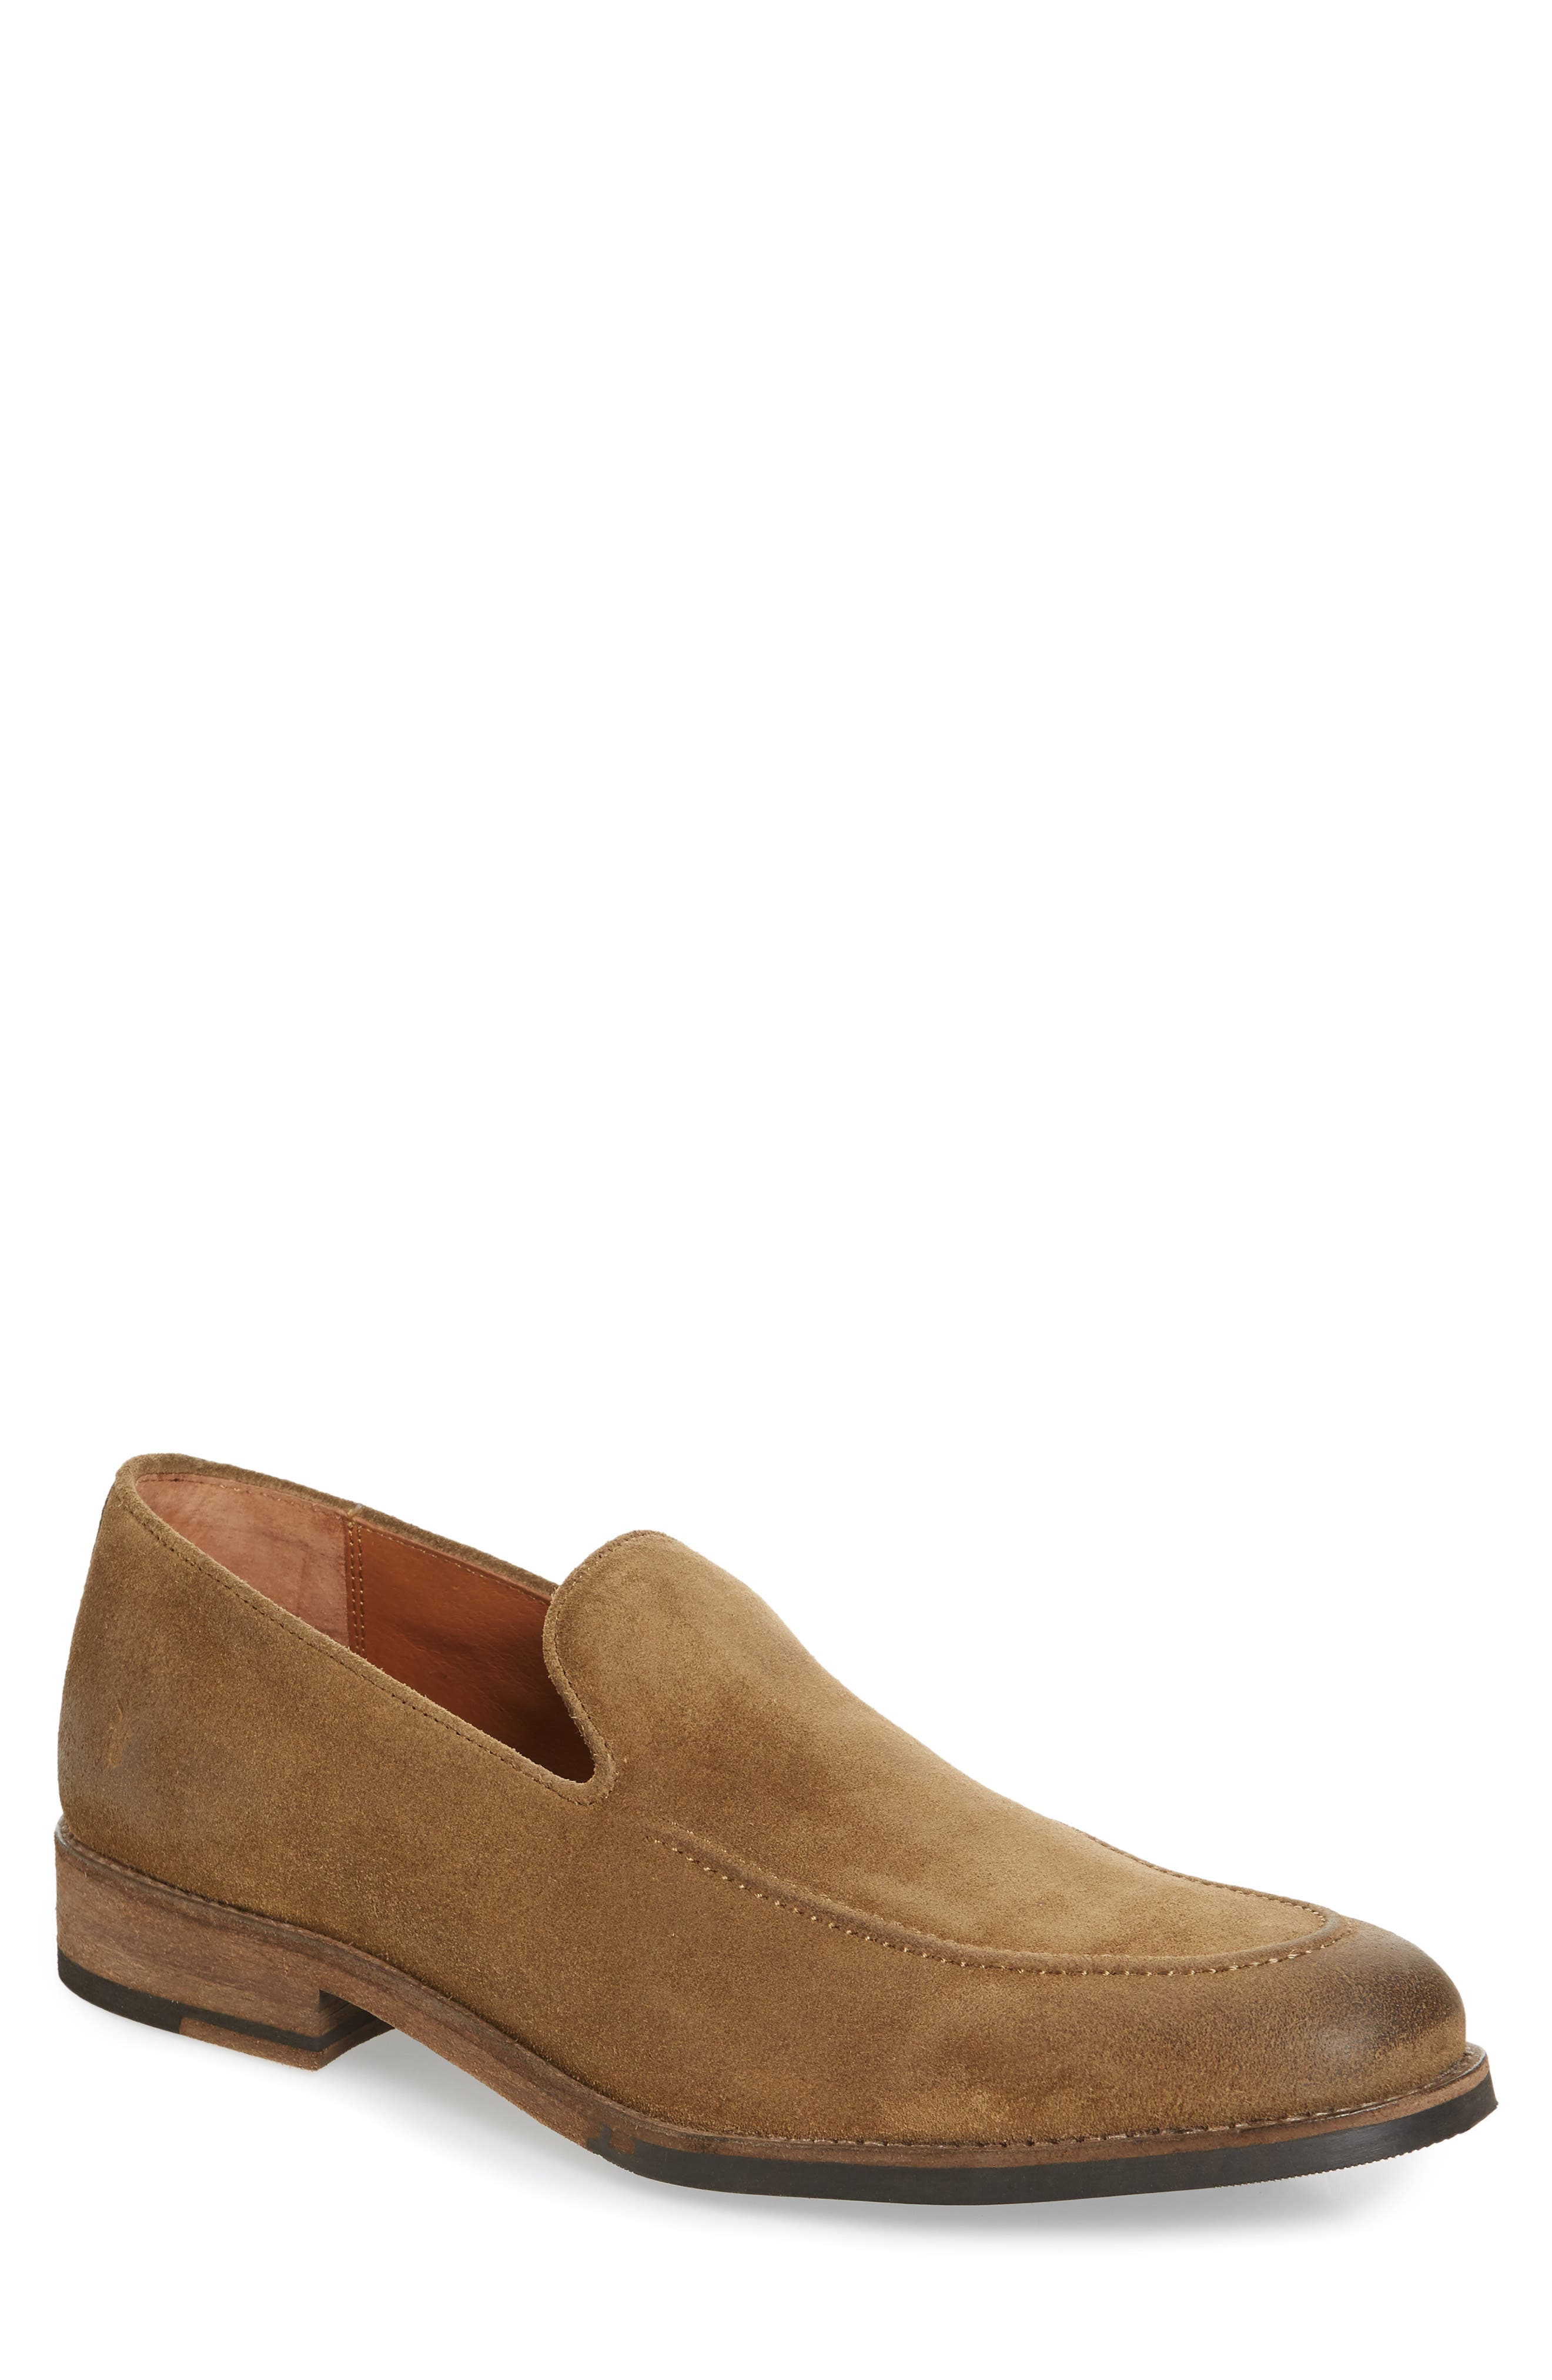 frye shoes for men 11 eee loafers